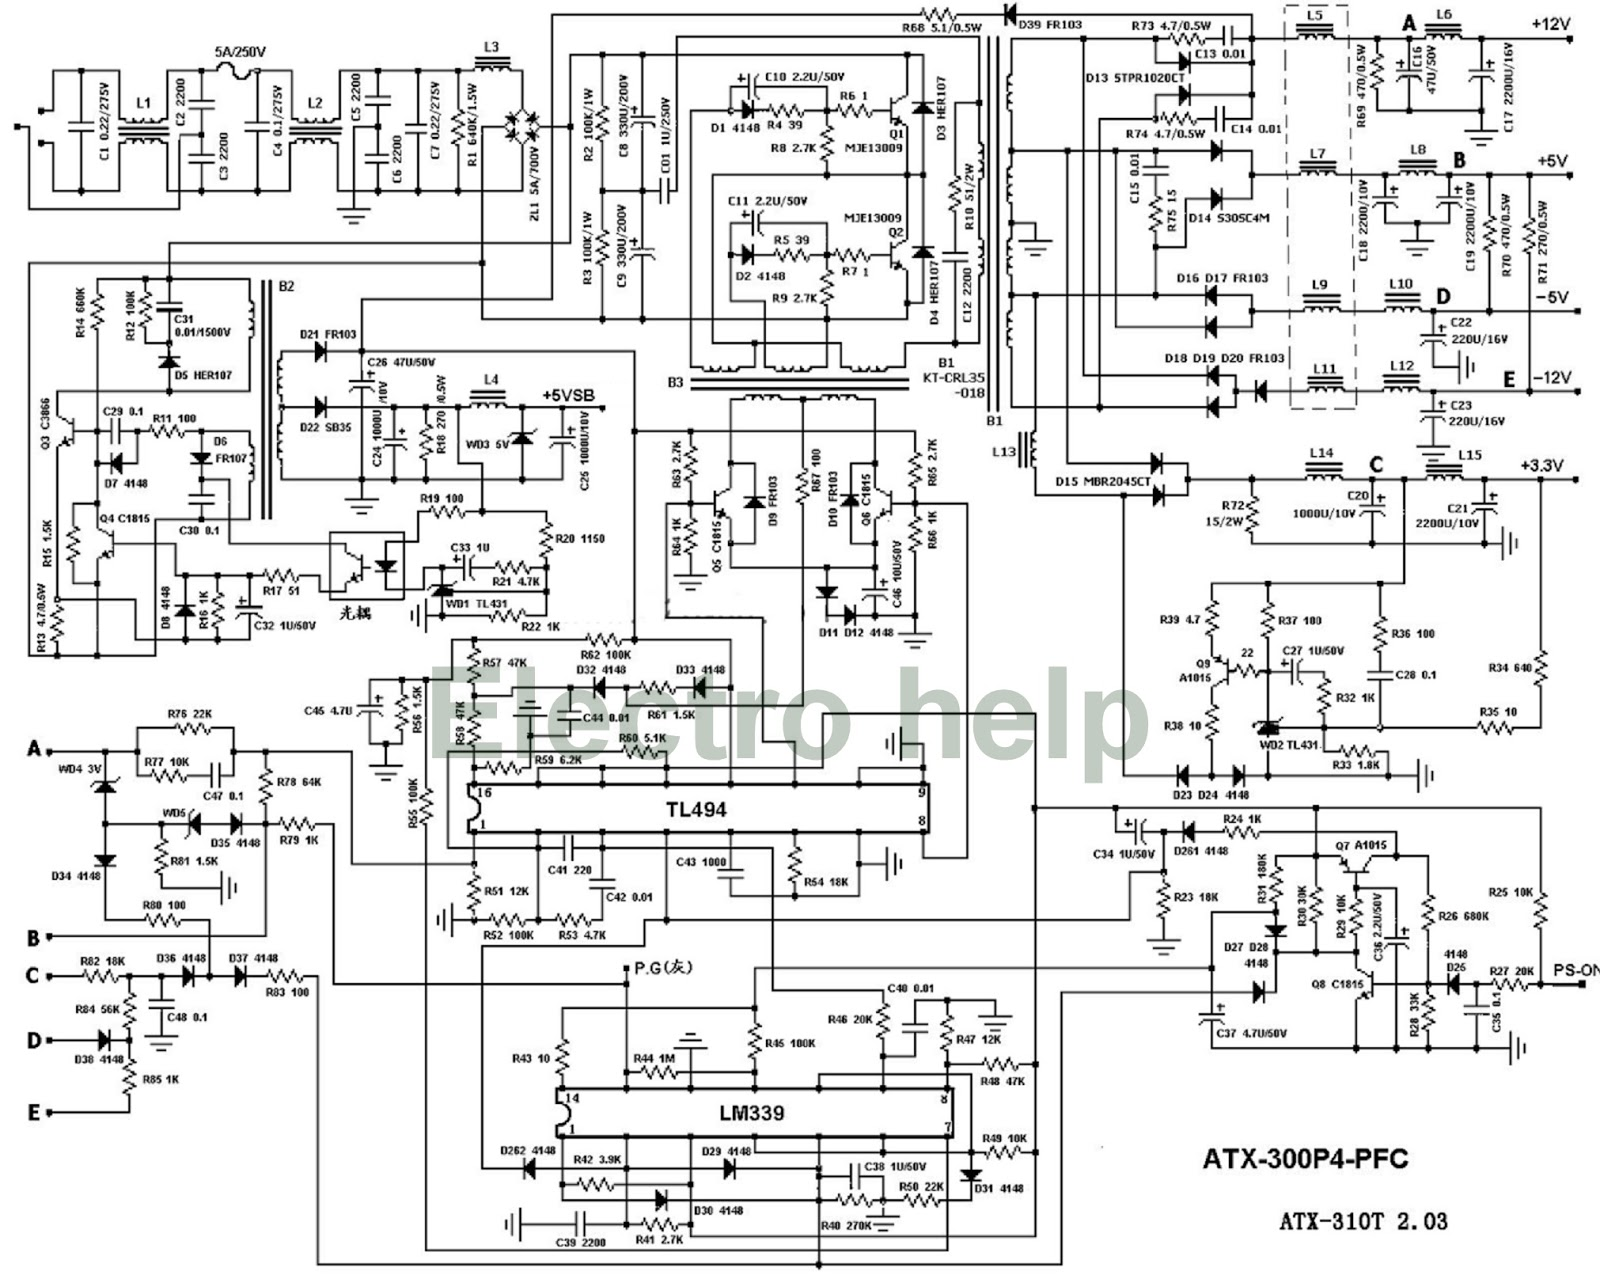 Asus Usb Wiring Diagram moreover Watch besides Atx Power Supply Schematic Diagram Download in addition TSINGHUA TONGFANG eb771g flat screen color monitor power supply circuit diagram further Heater Symbol. on computer power supply wiring color code